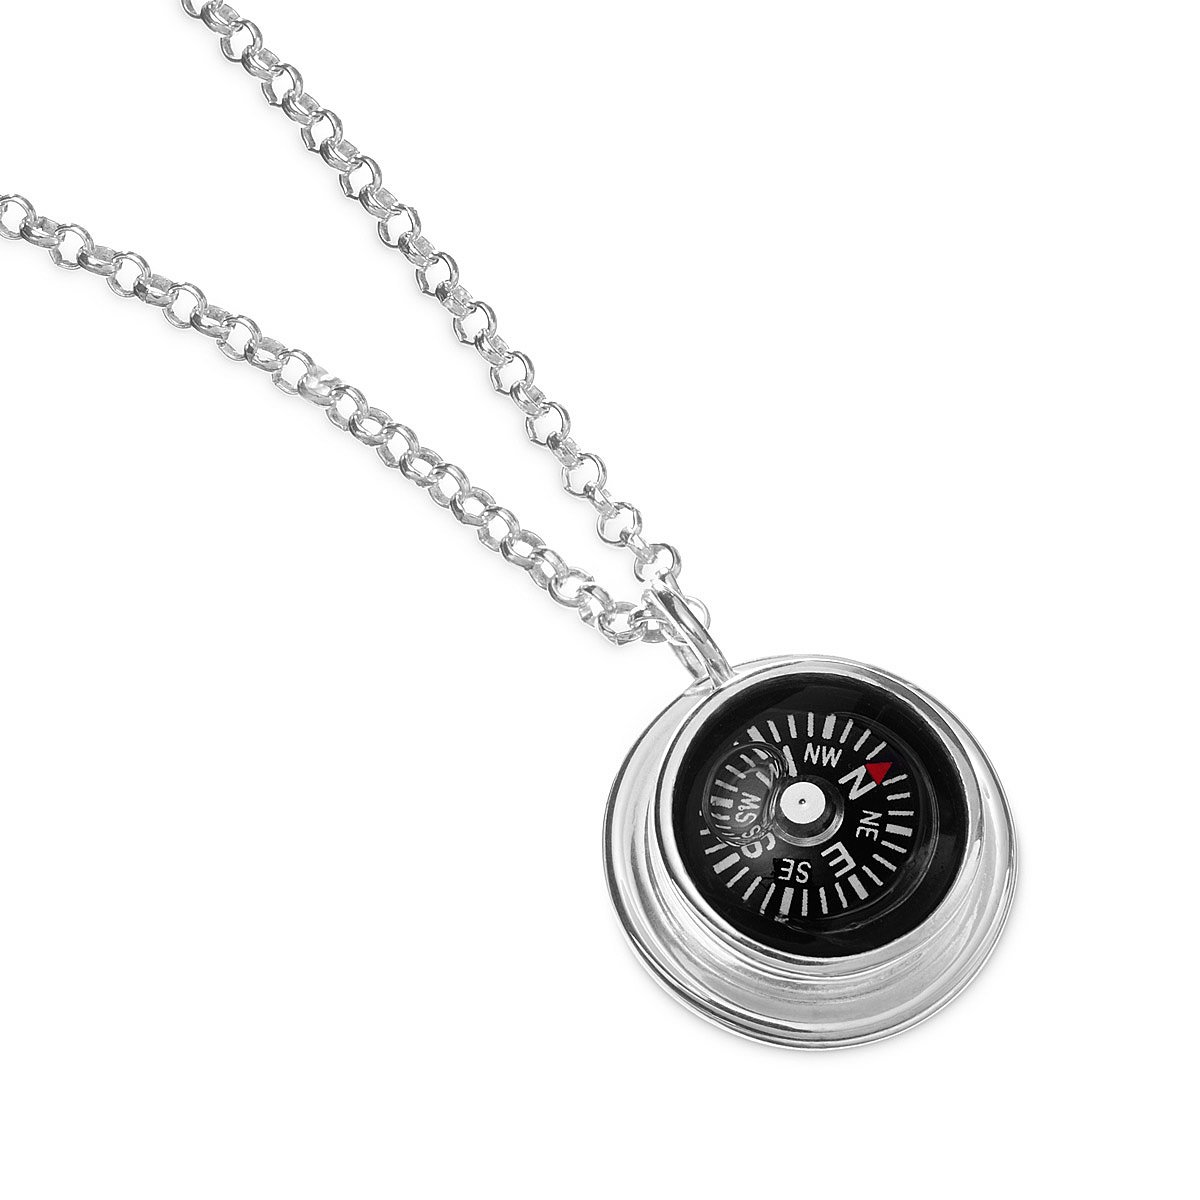 products for gift her gold marciahdesigns jewelry necklace handmade compass fullxfull graduation kfuh il